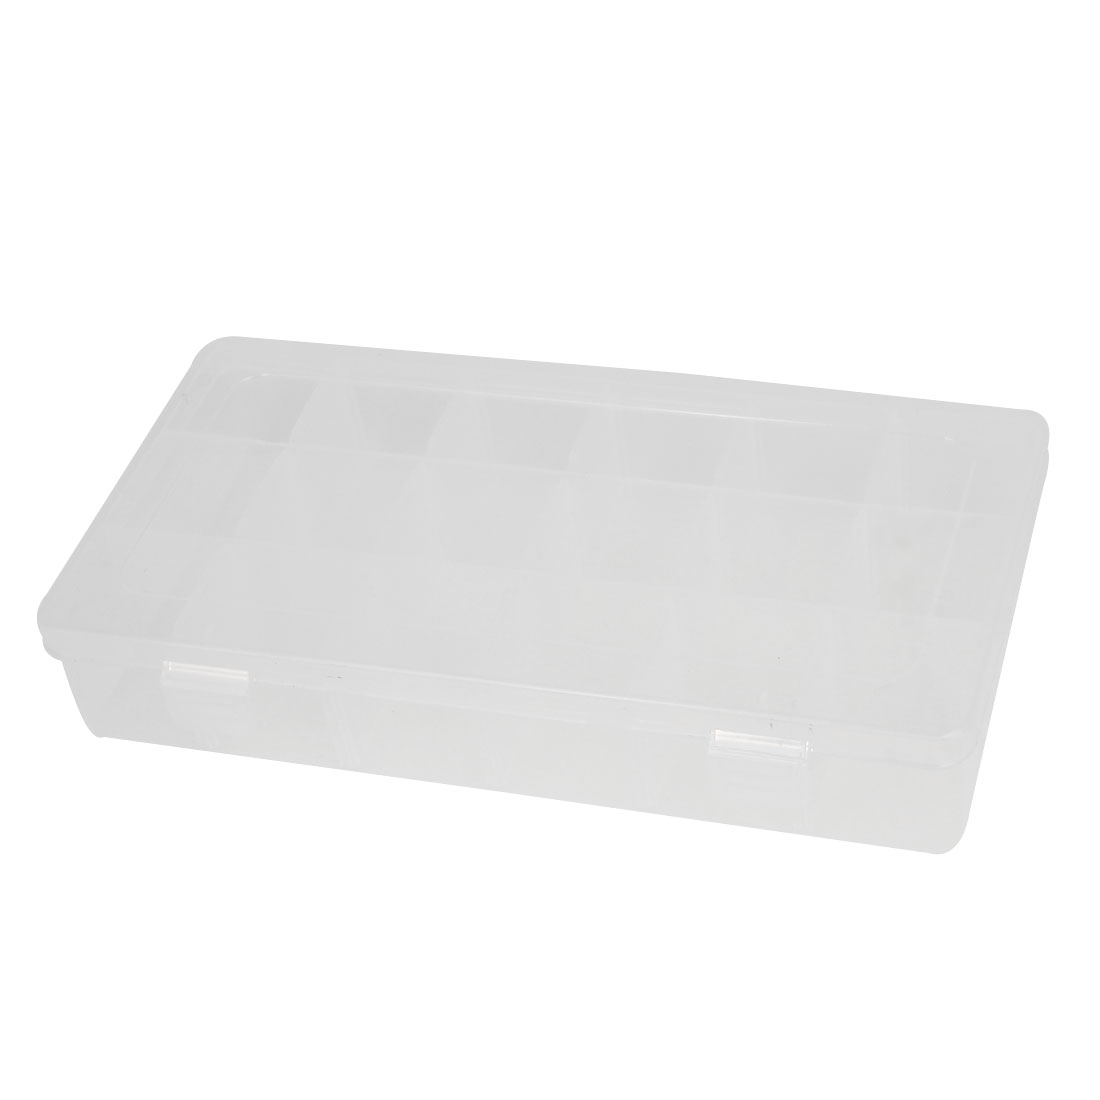 Clear White 18-slot Electronic Component Storage Box Case Holder 230mmx112mmx42mm